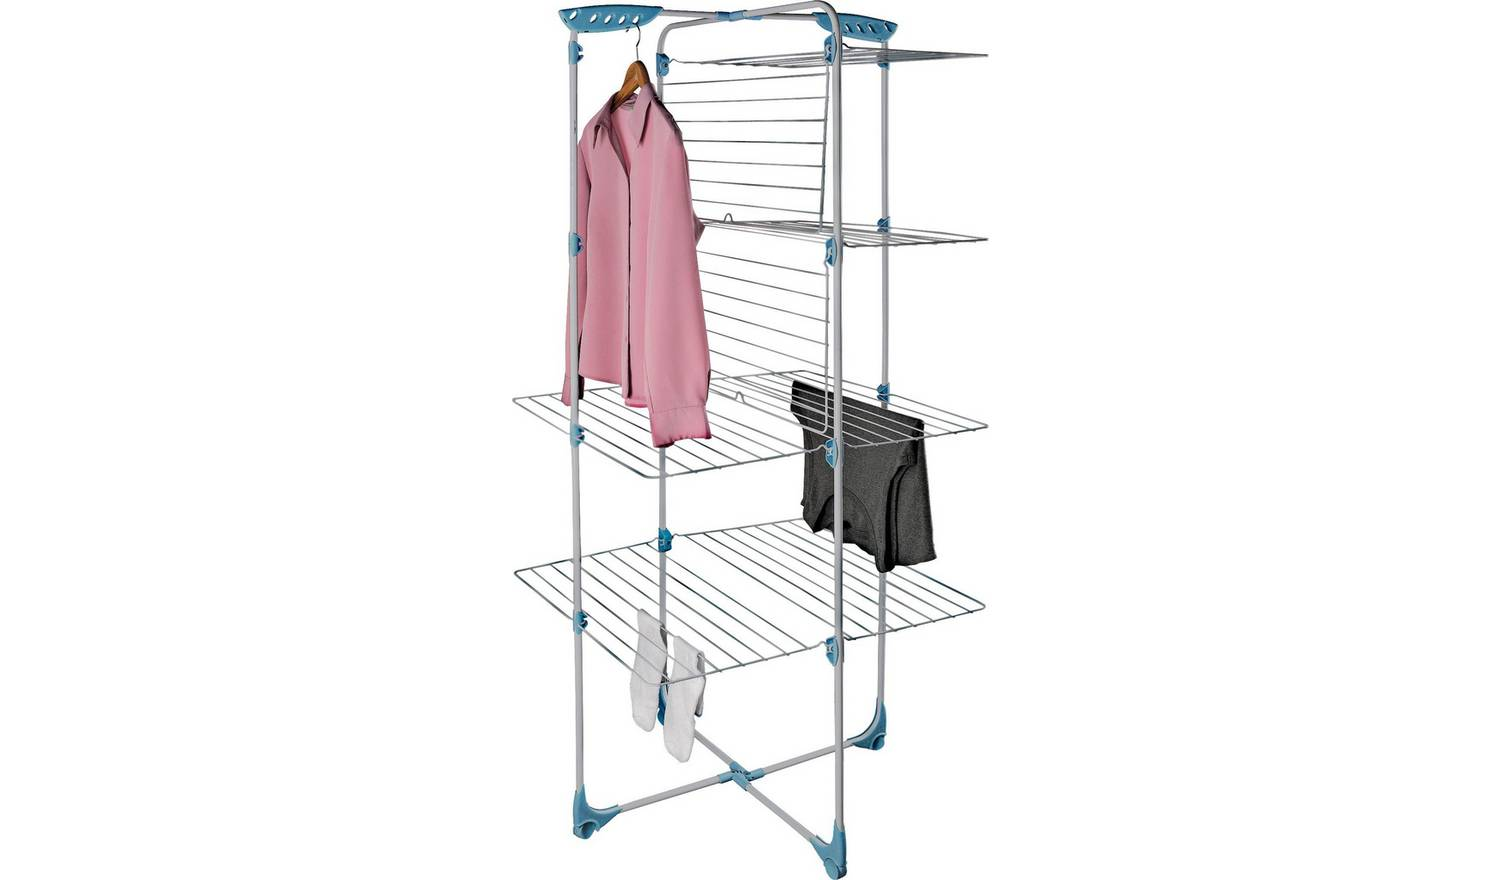 40m Indoor Clothes Airer